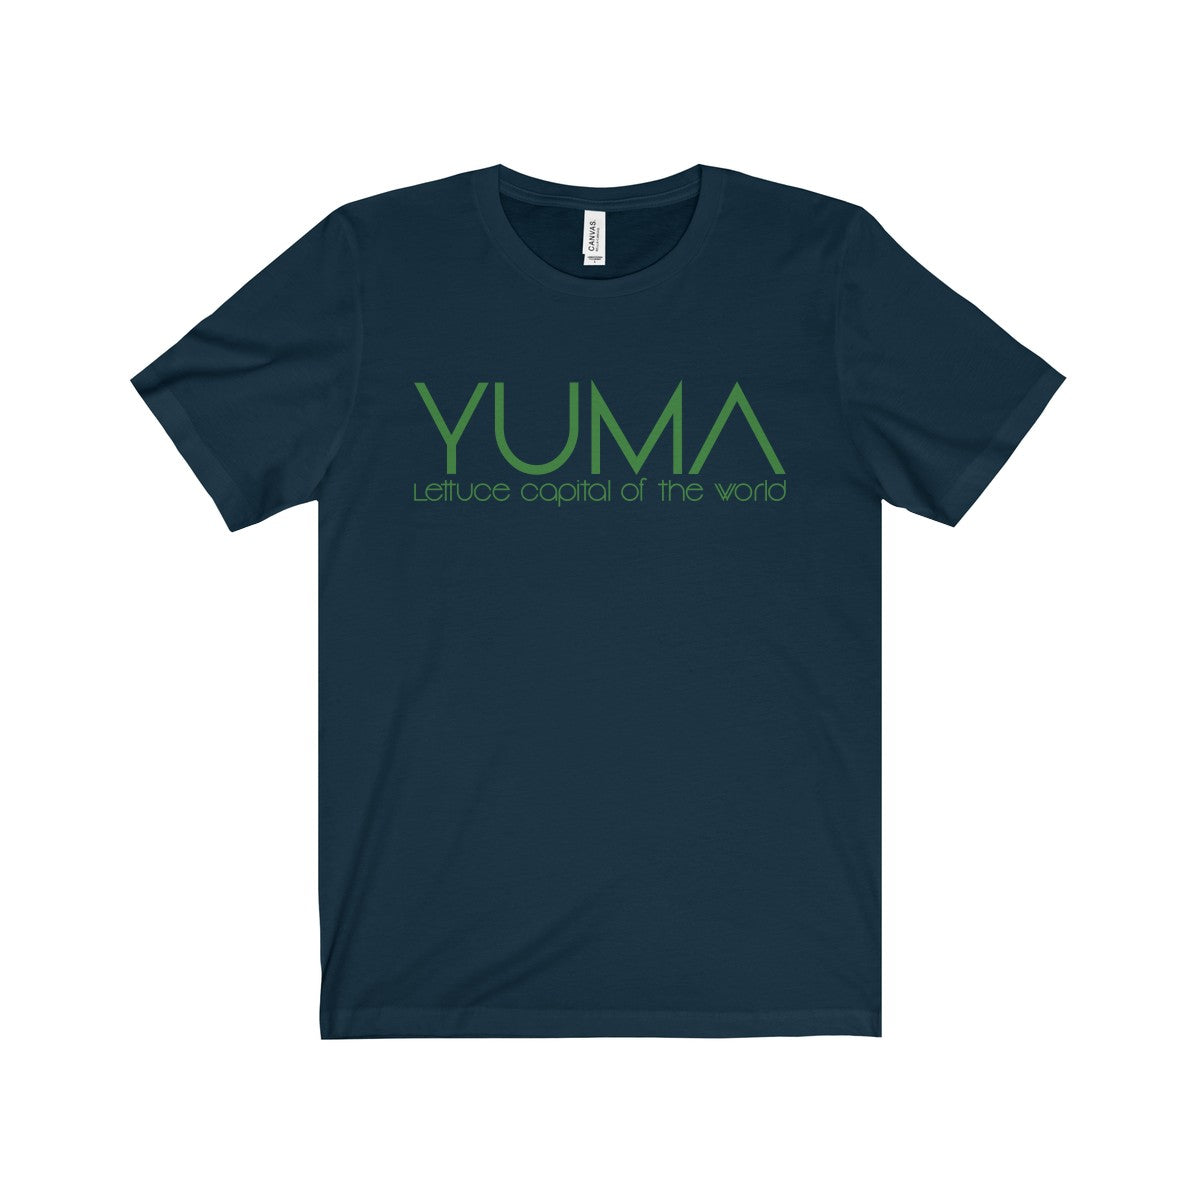 Yuma Lettuce Capital of the World Green Tee